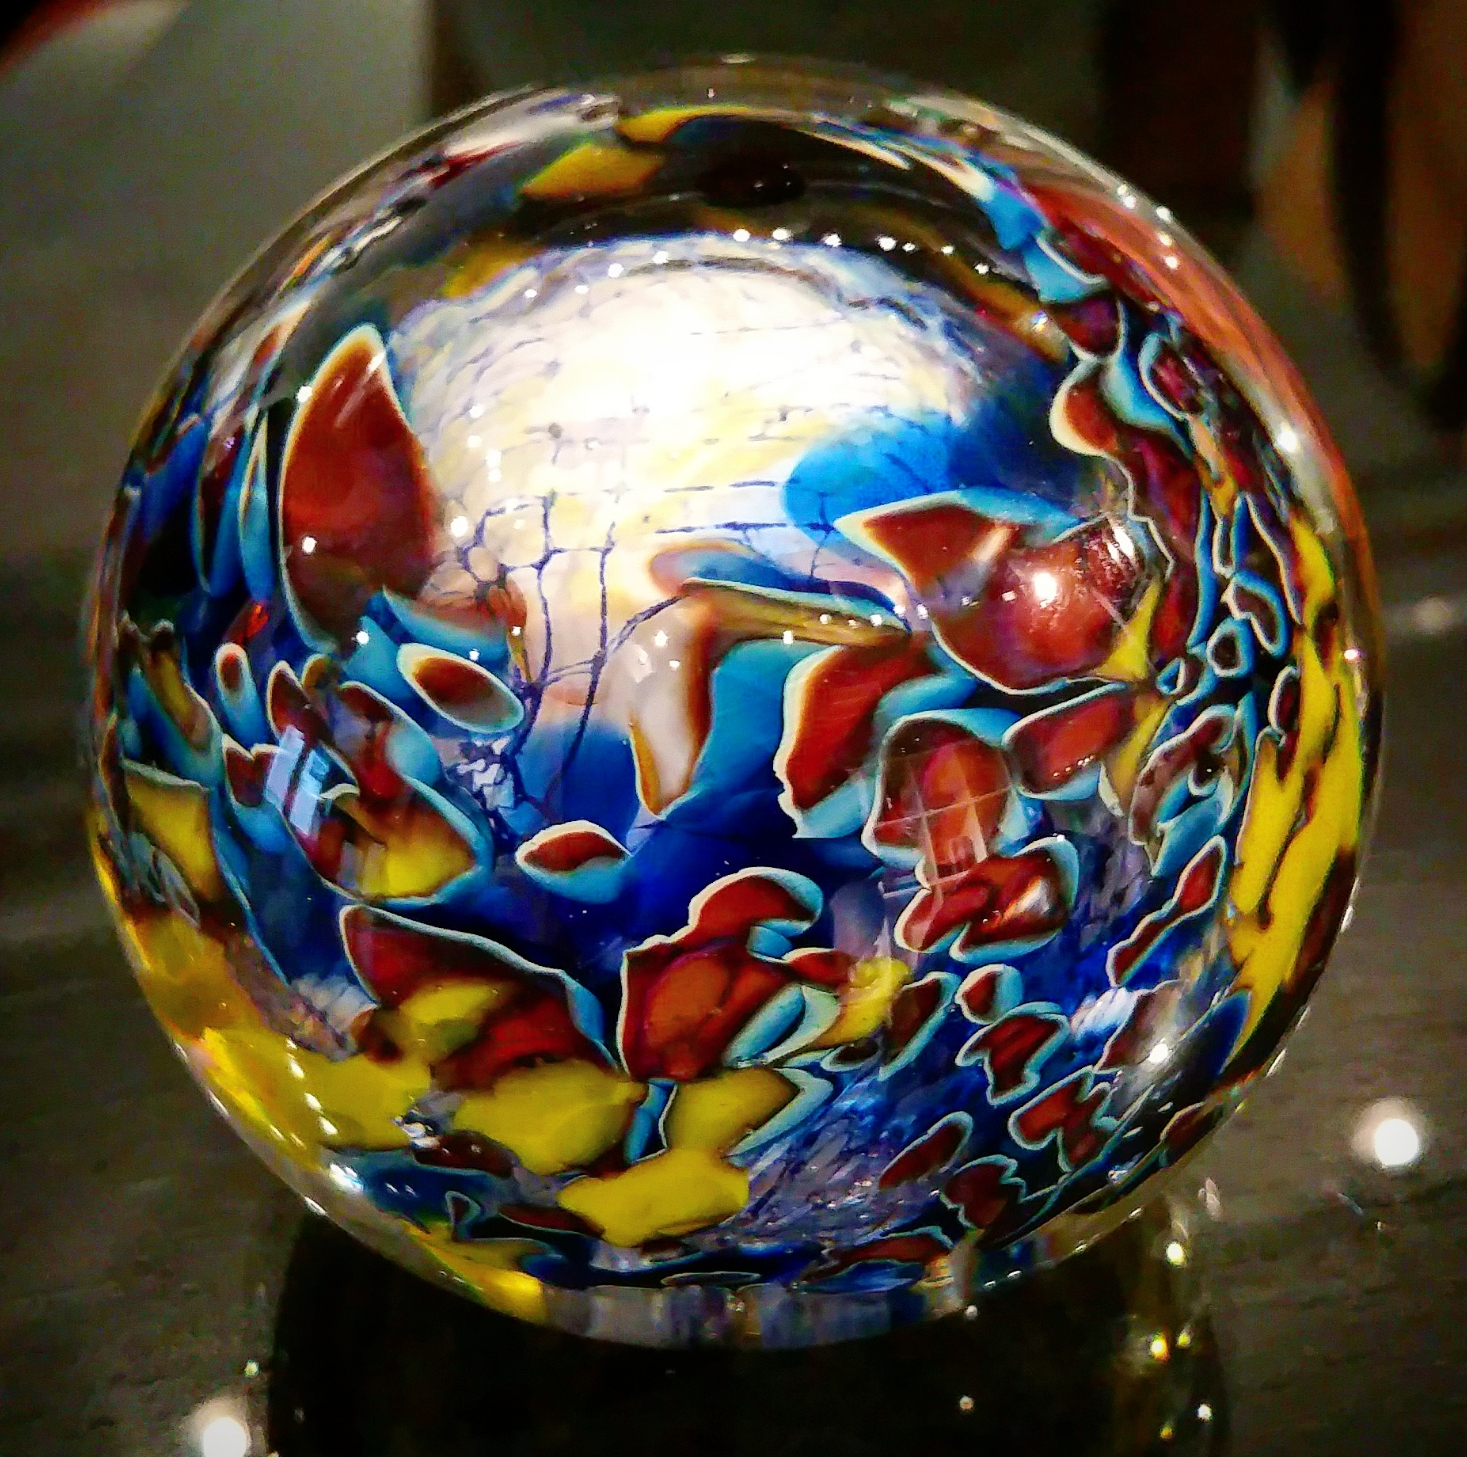 Glass paperweight by Robert Palusky